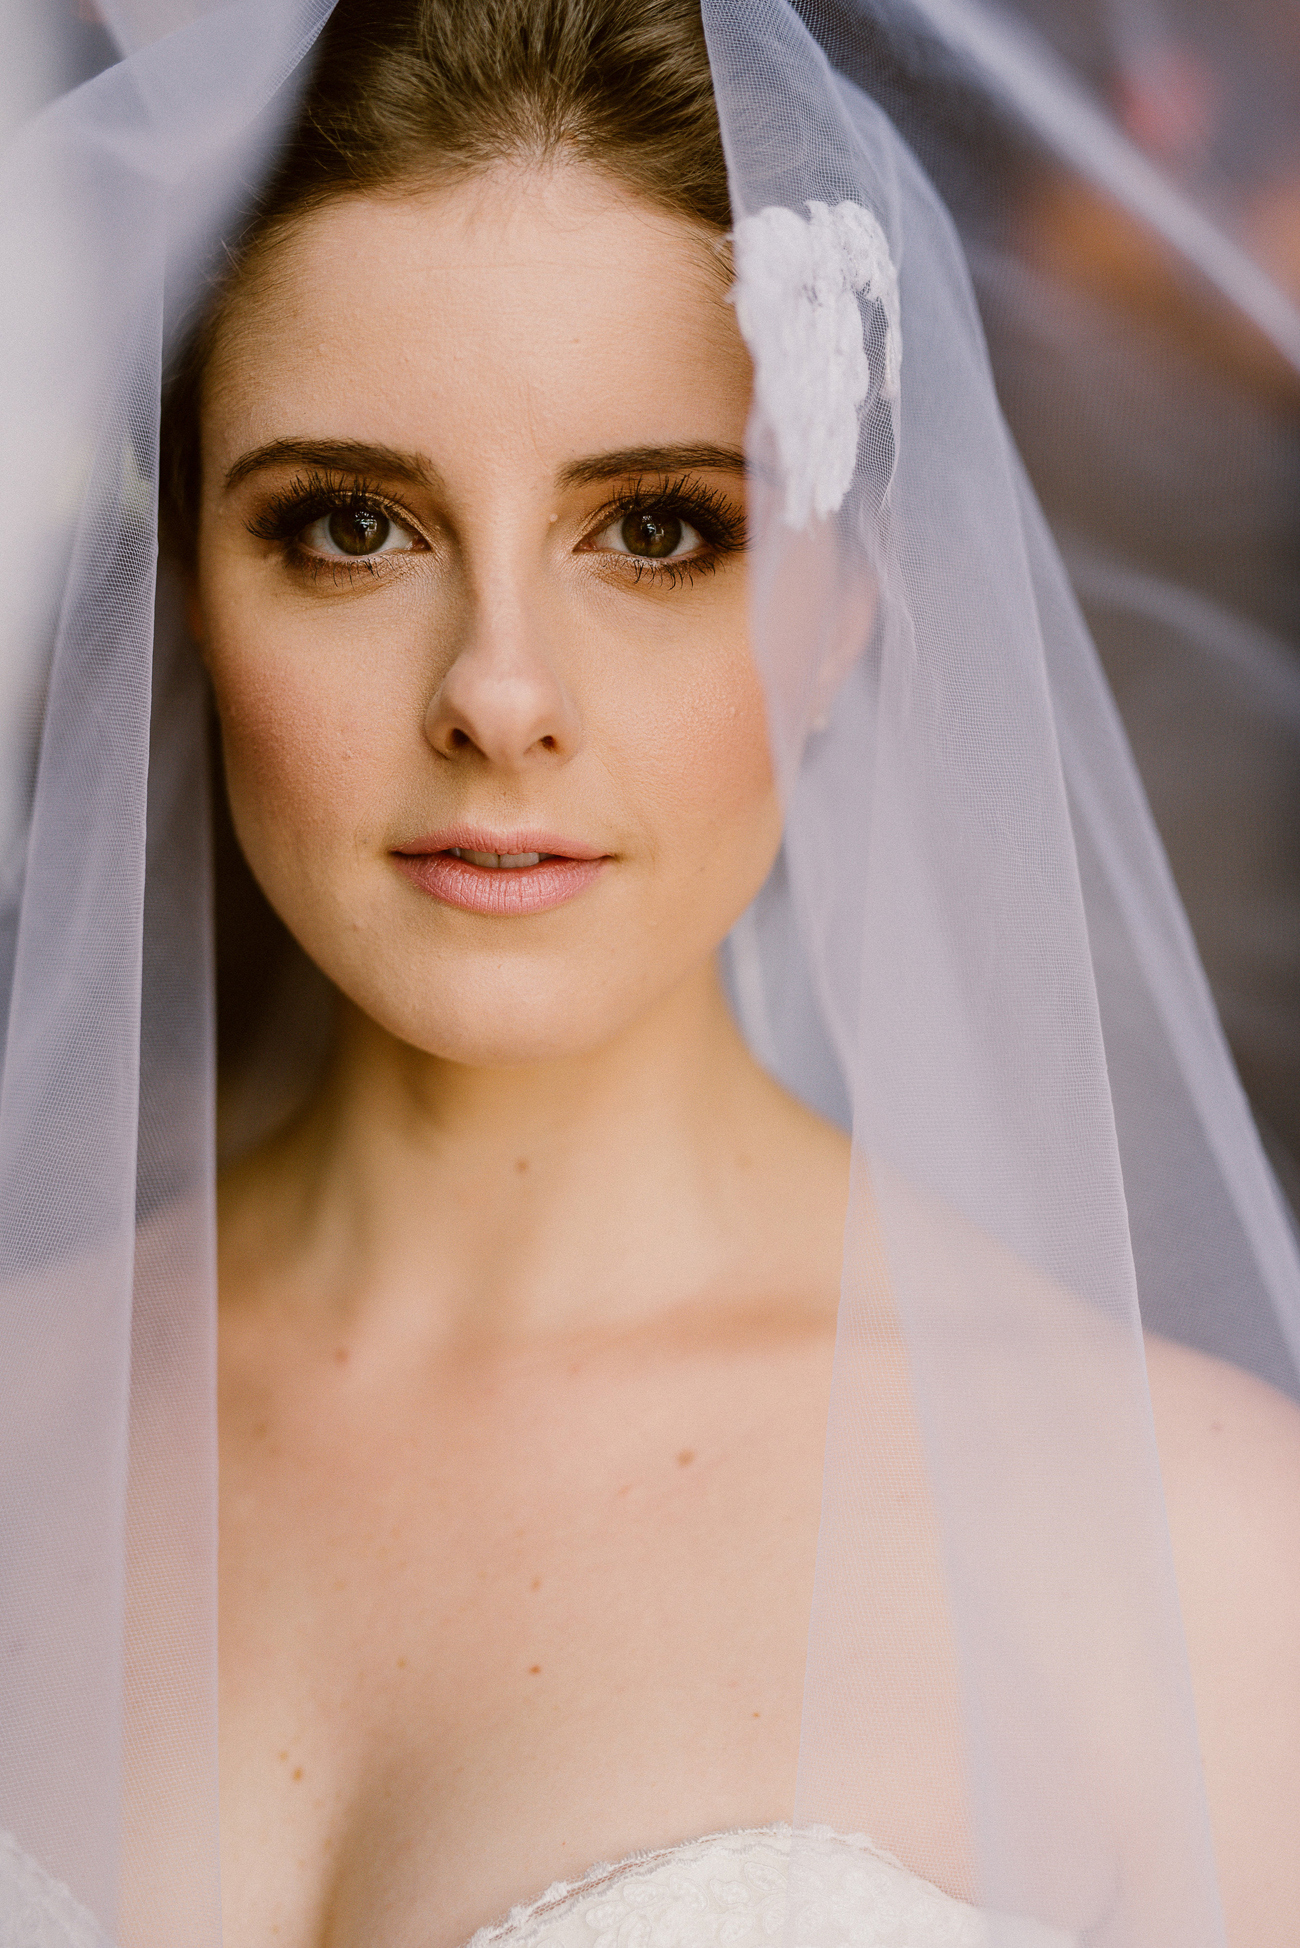 Heirloom Wedding Veil | Image: Lad & Lass Photography